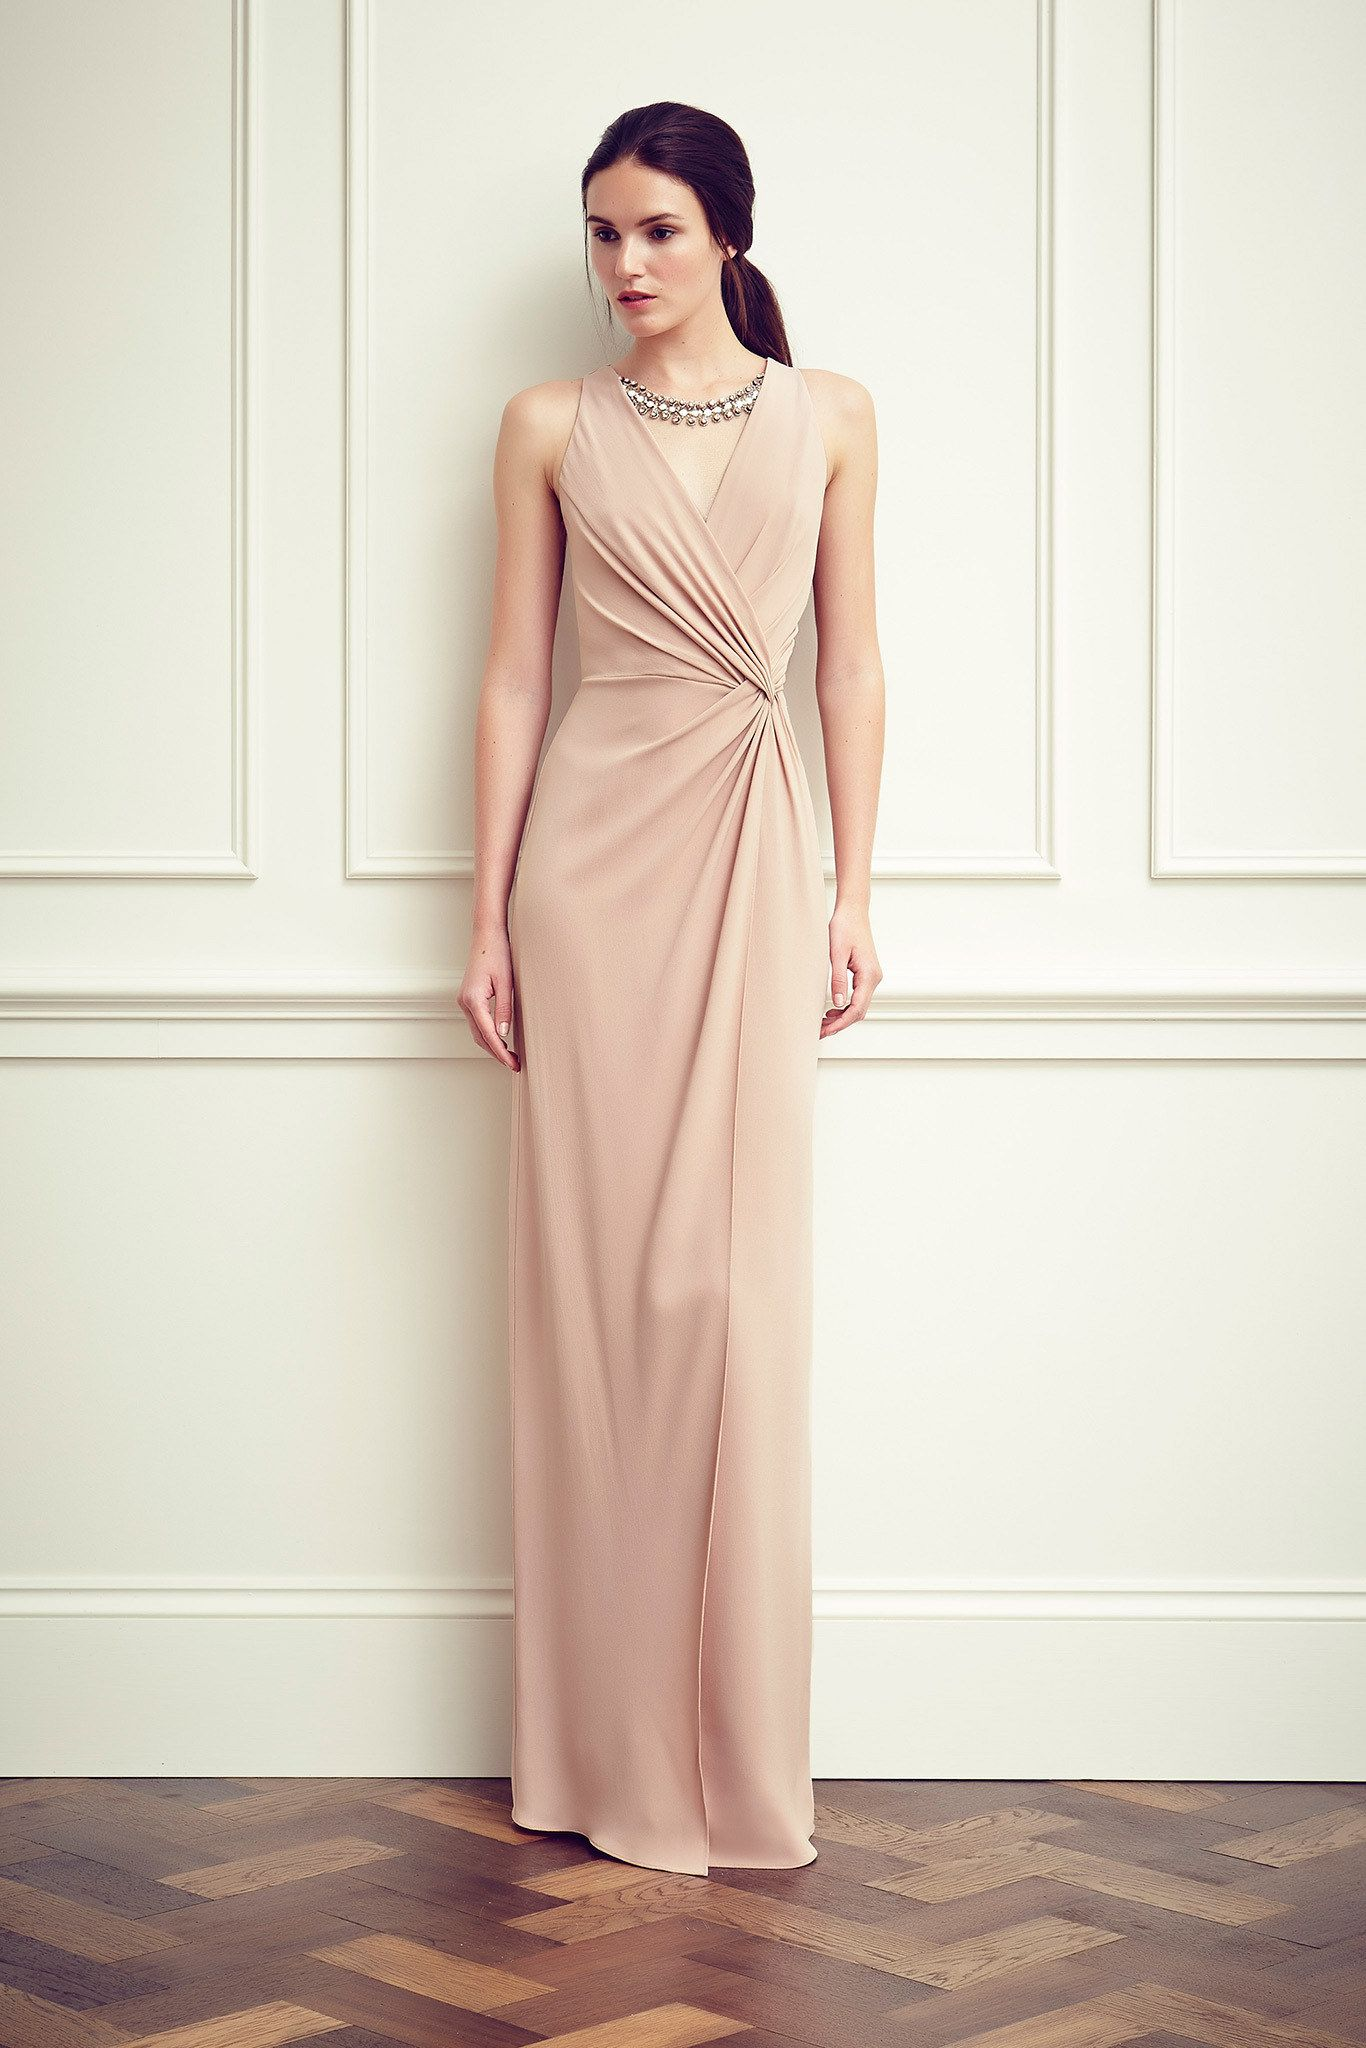 Jenny Packham Resort 2015 Fashion Show